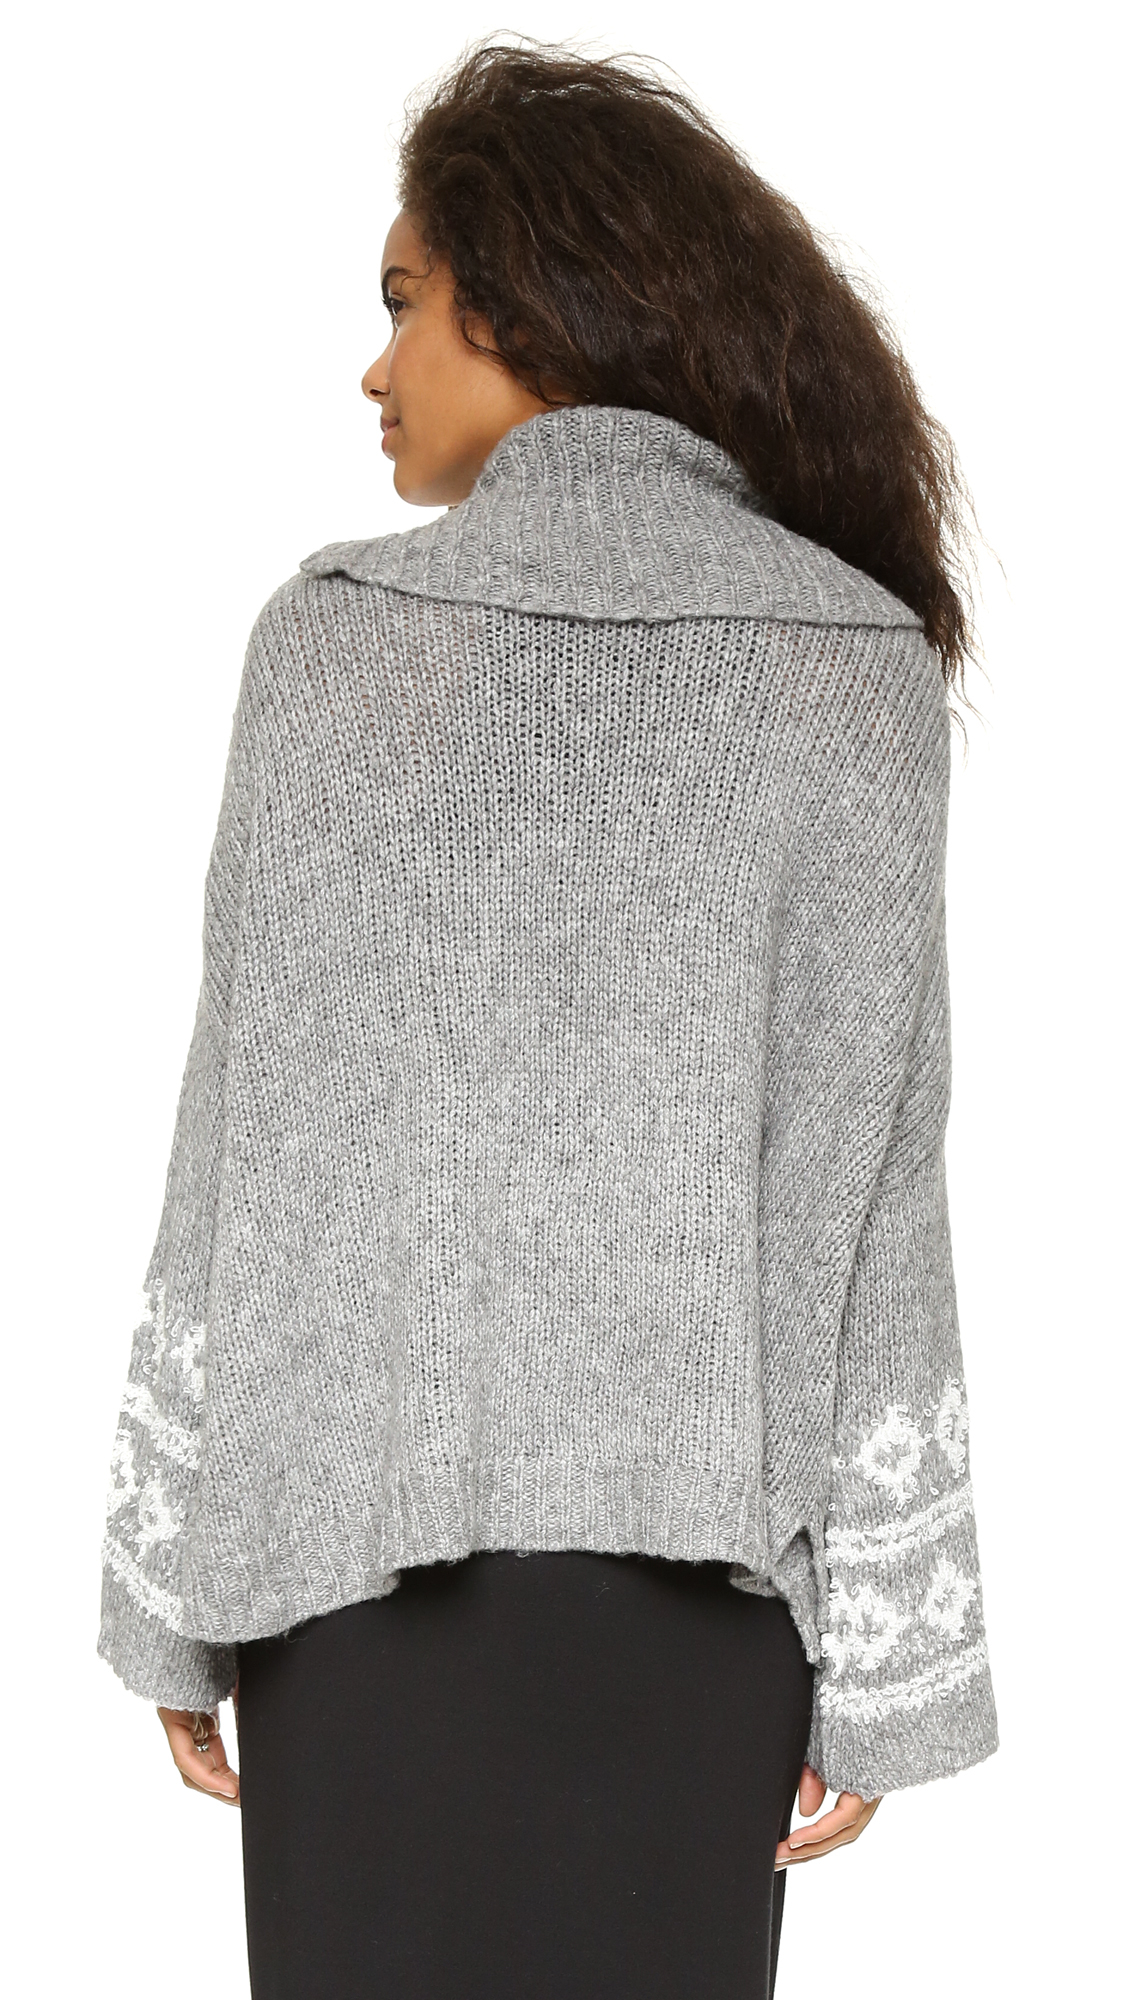 fb290ffd4 Lyst - Free People Fair Isle Split Neck Sweater - Charcoal ivory in Gray